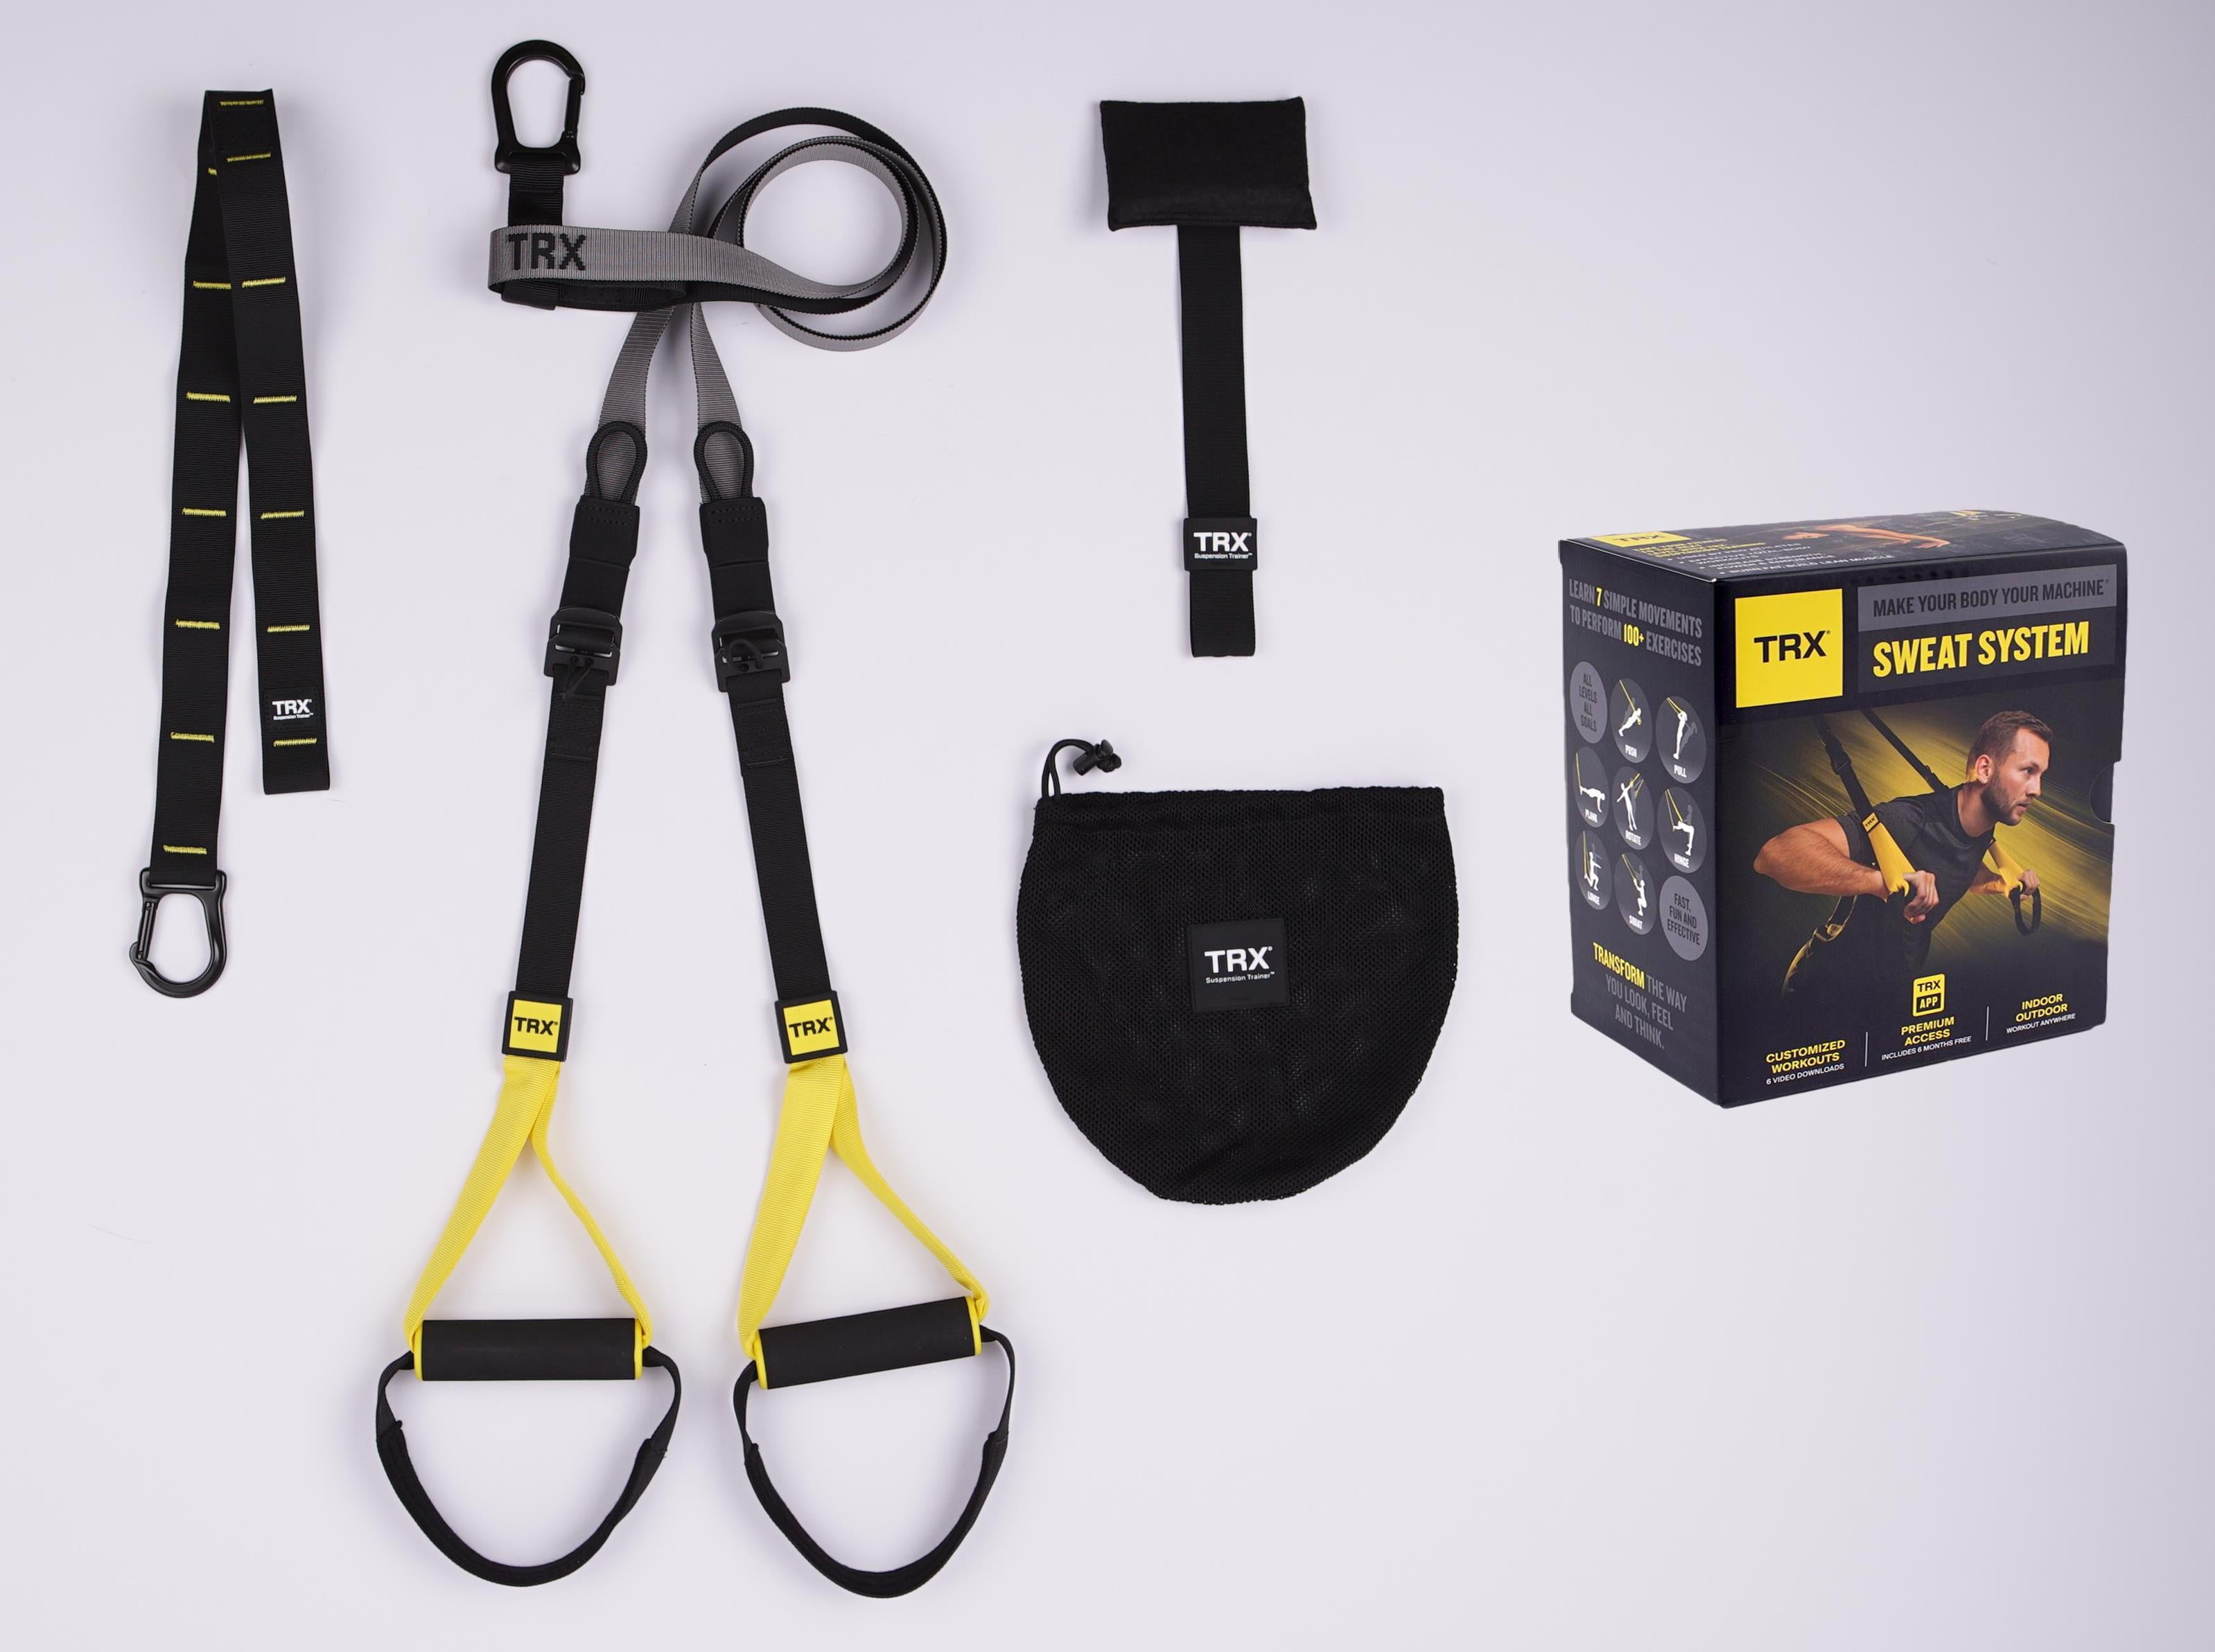 TRX Training TRX SWEAT System with 6 months App